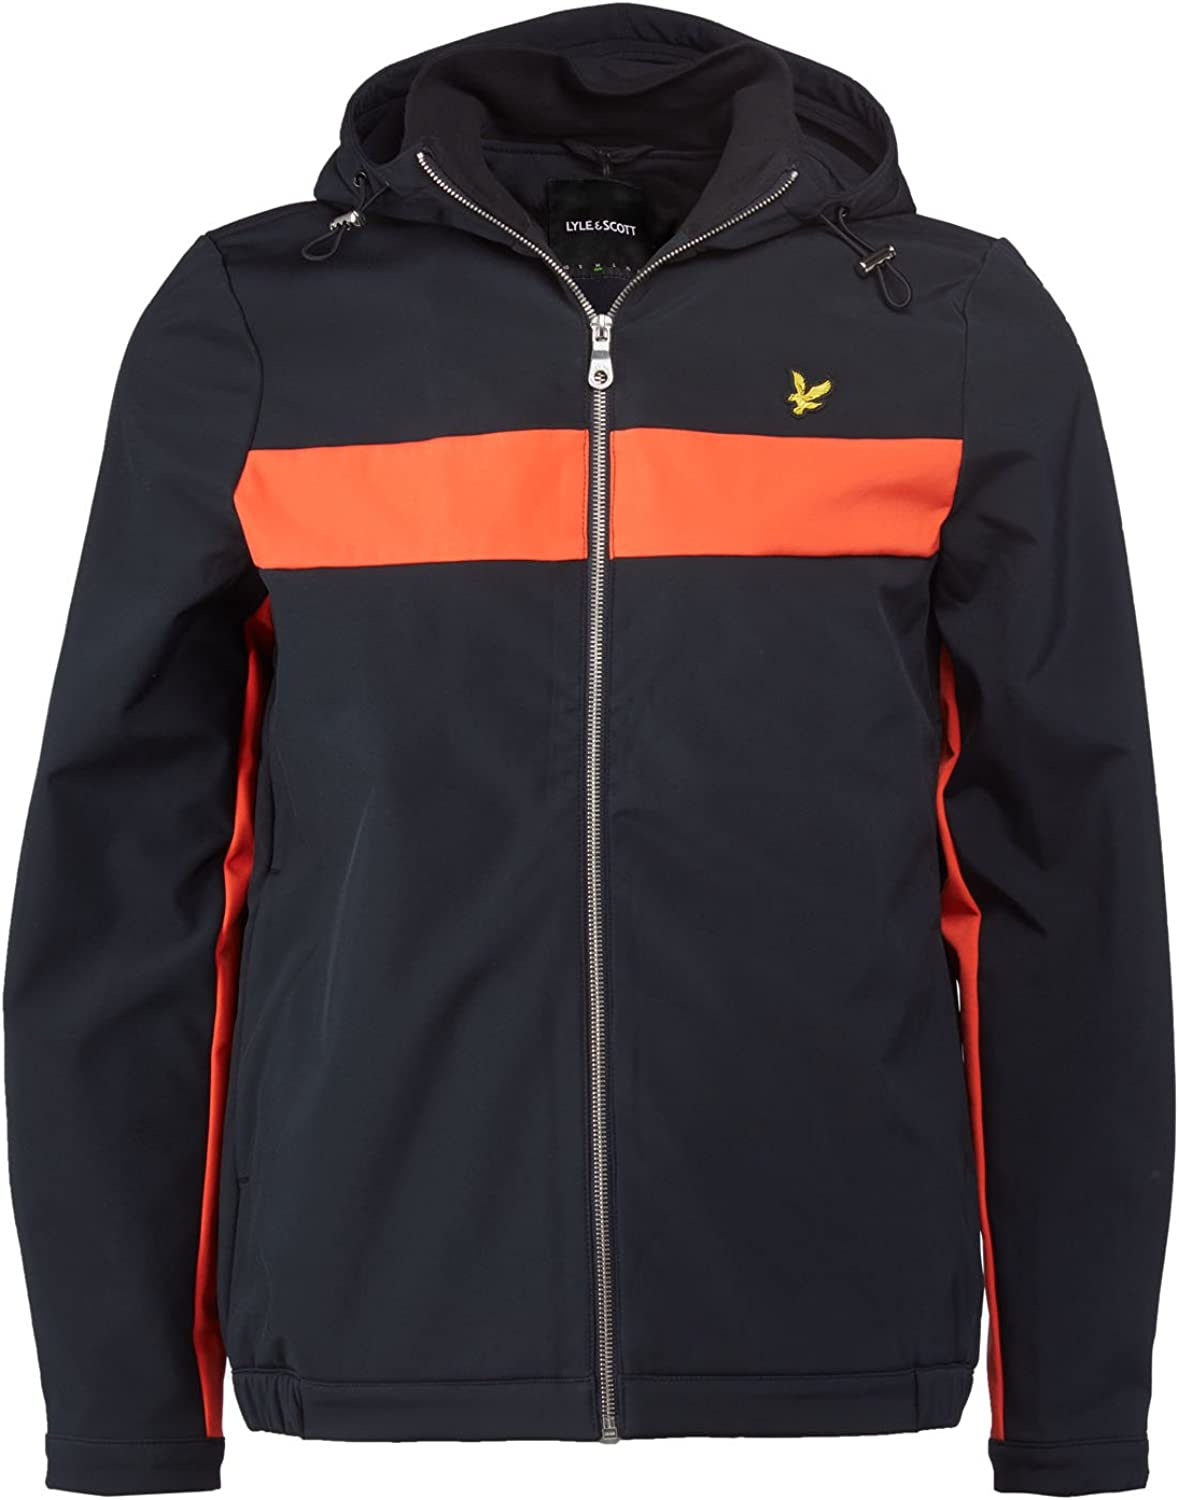 f20ecbb09e5a1 Lyle & & & Scott Mens Navy Hooded Softshell Jacket - S e9f4cc - pyjd ...